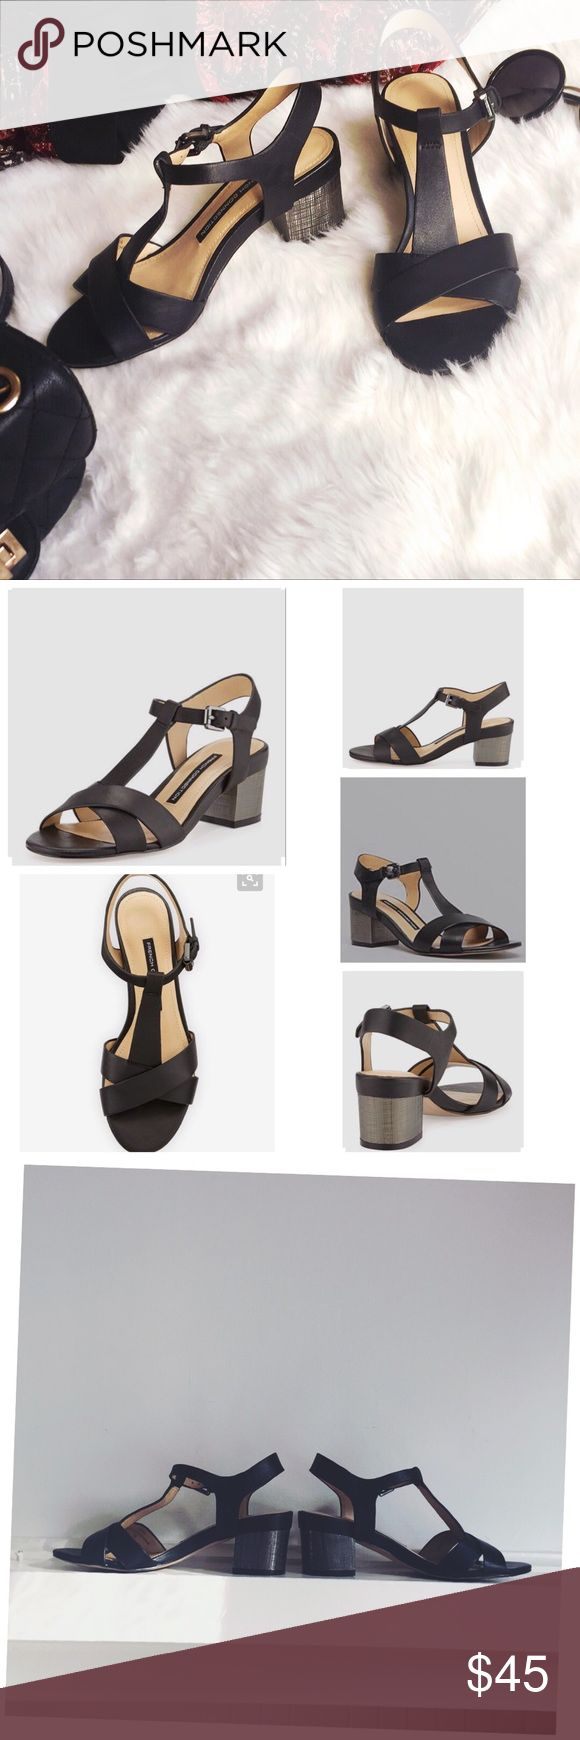 """French Connection Lara Block Heel Black Sandal, 6 A basic! Comfortable and stylish leather city sandal. Textured 2 1/2"""" silvertone block heel. Open round toe. Crisscross bands over vamp. T-strap upper. Ankle strap w/silvertone buckle closure. Padded insole; smooth outsole. Excellent condition (worn twice). No stain, no scratches French Connection Shoes Sandals"""